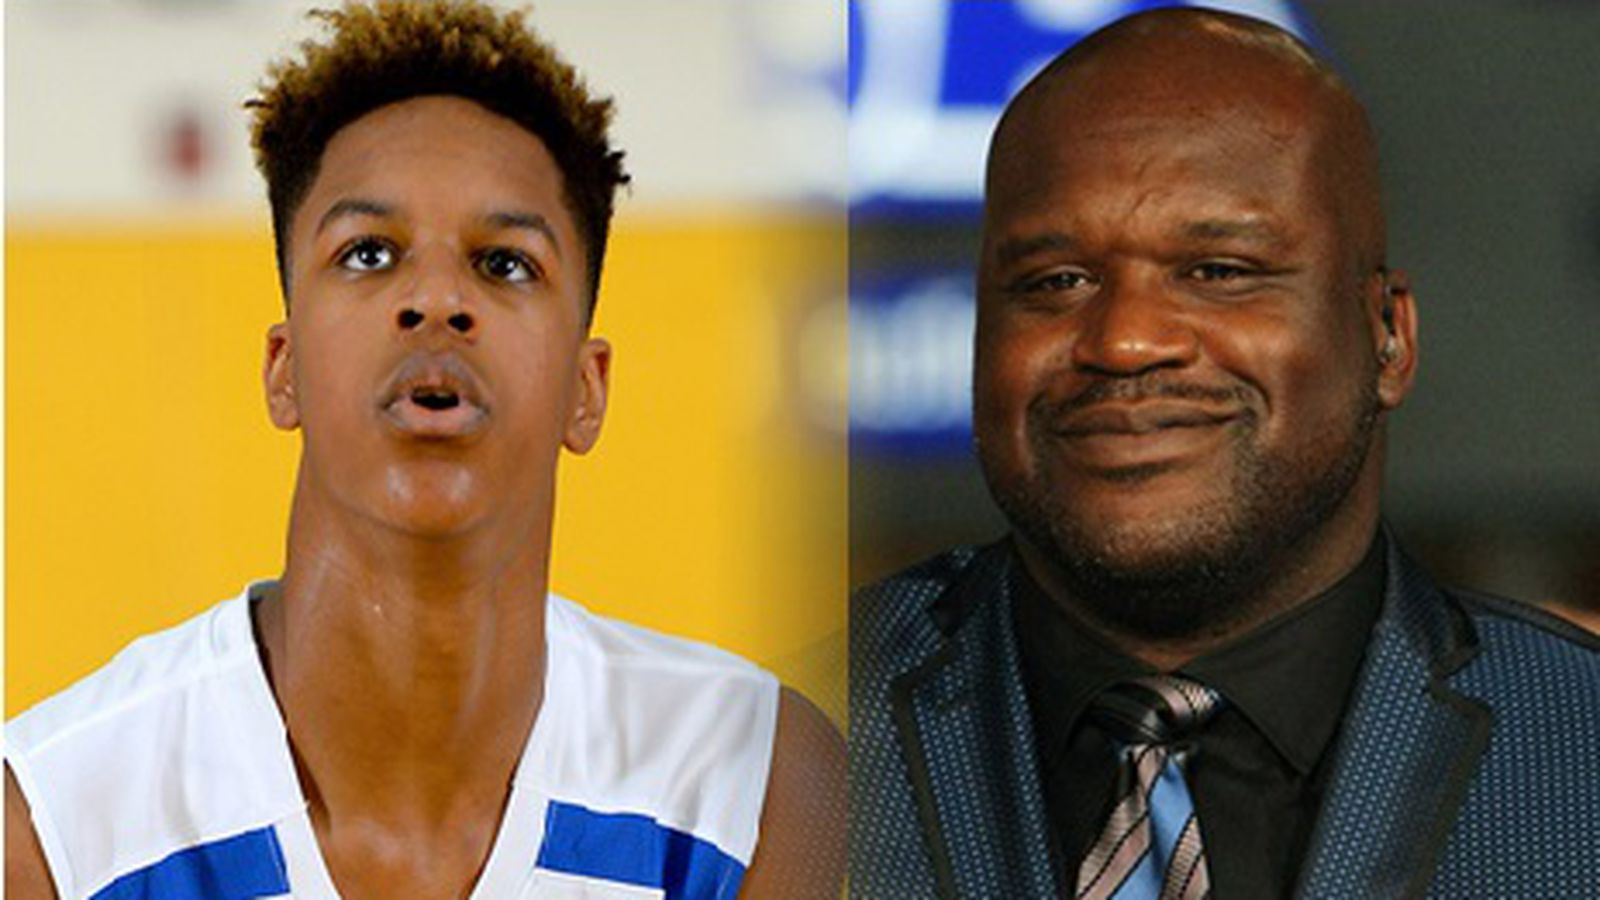 Shareef-oneal.0.0